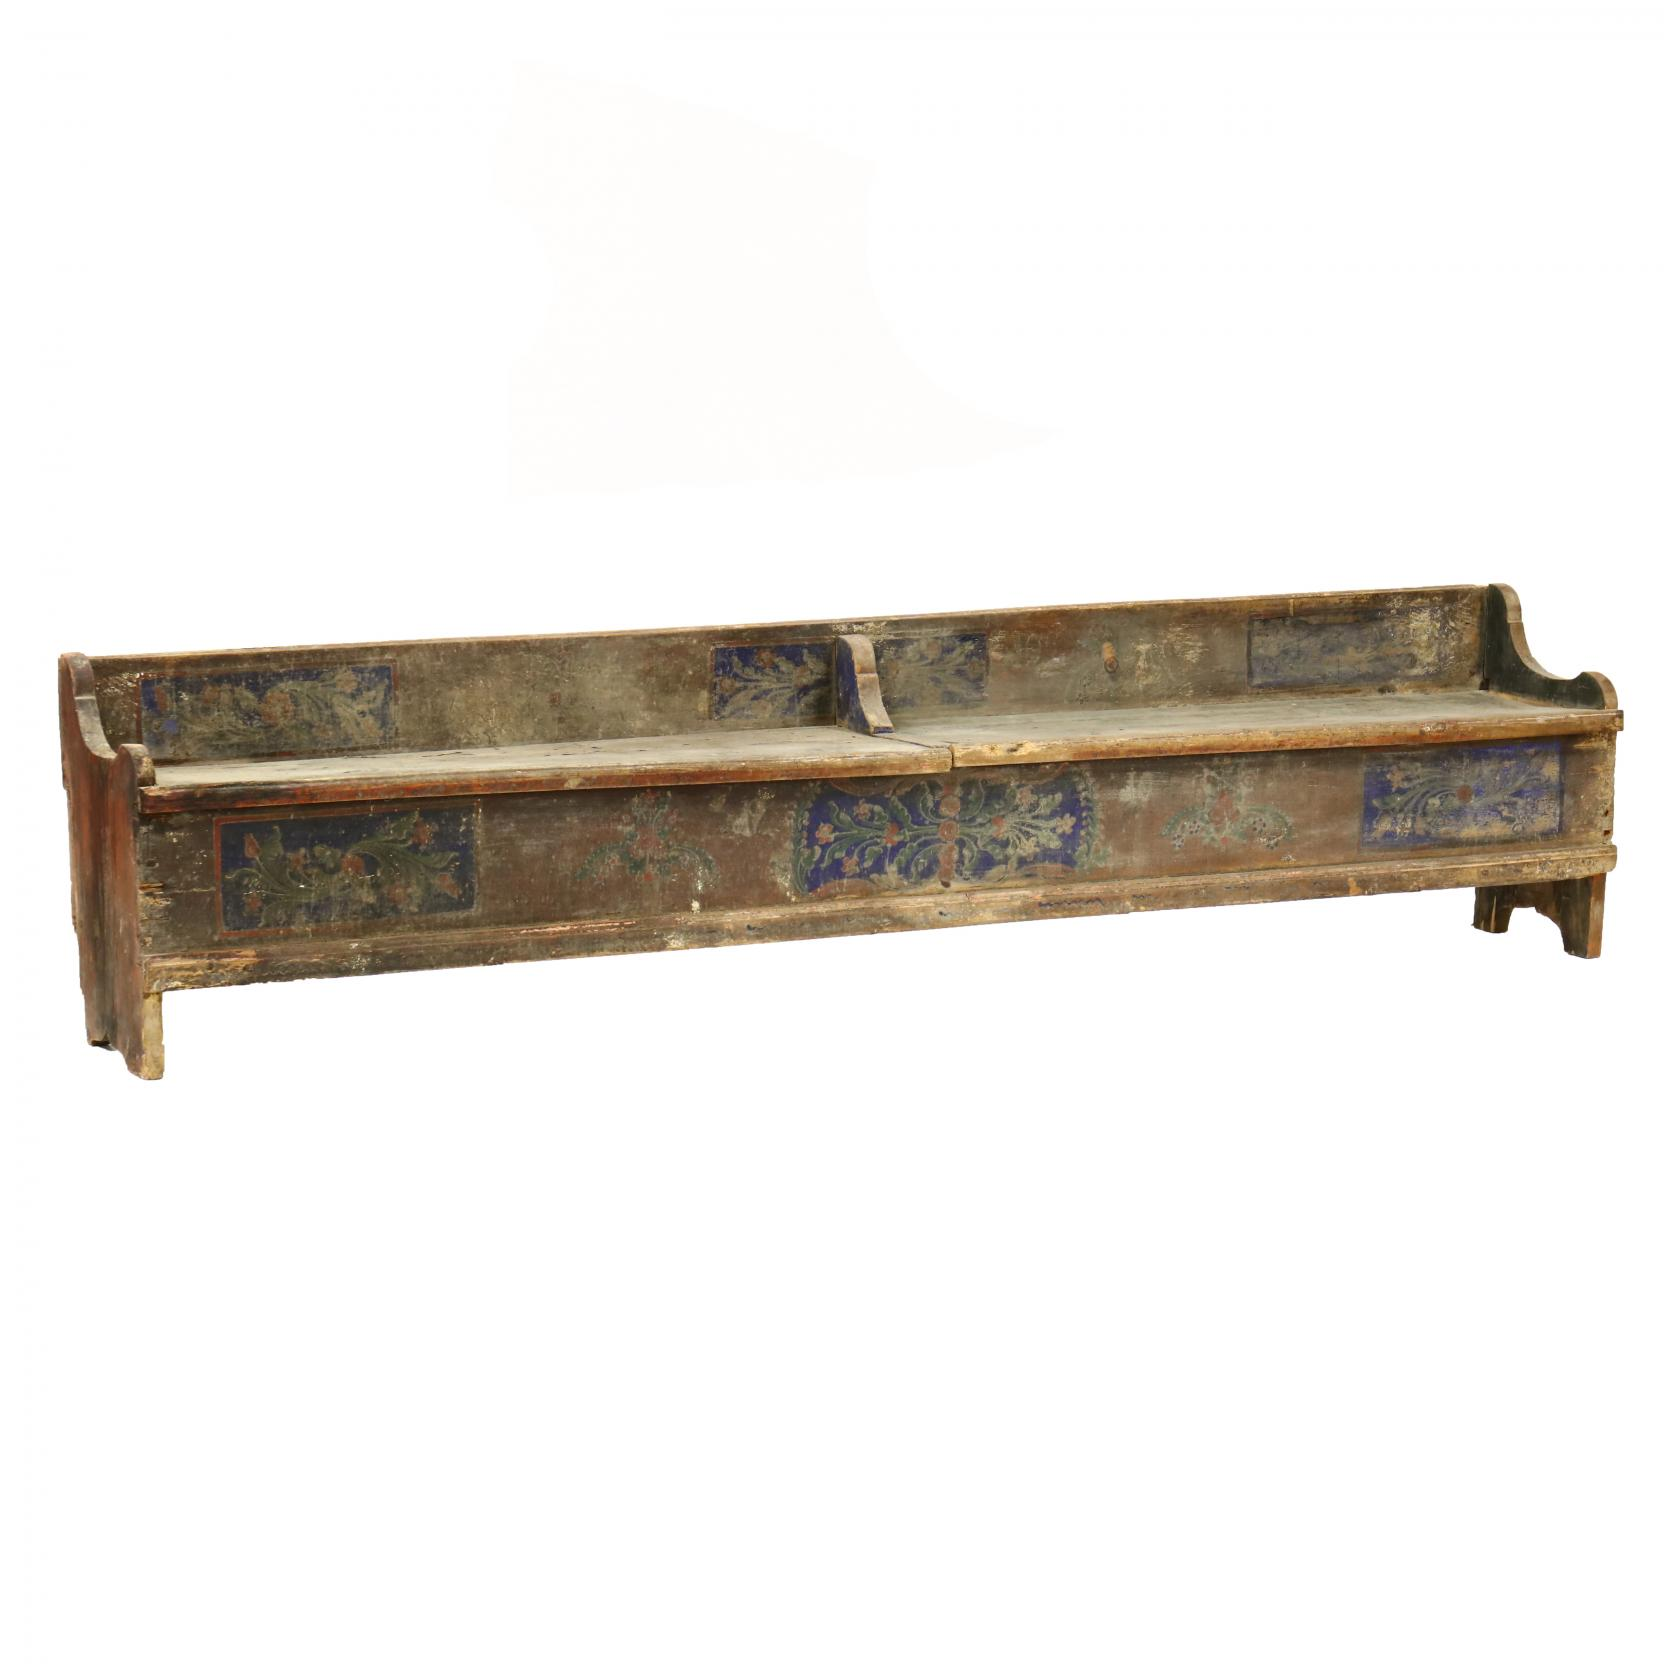 large-antique-continental-paint-decorated-storage-bench